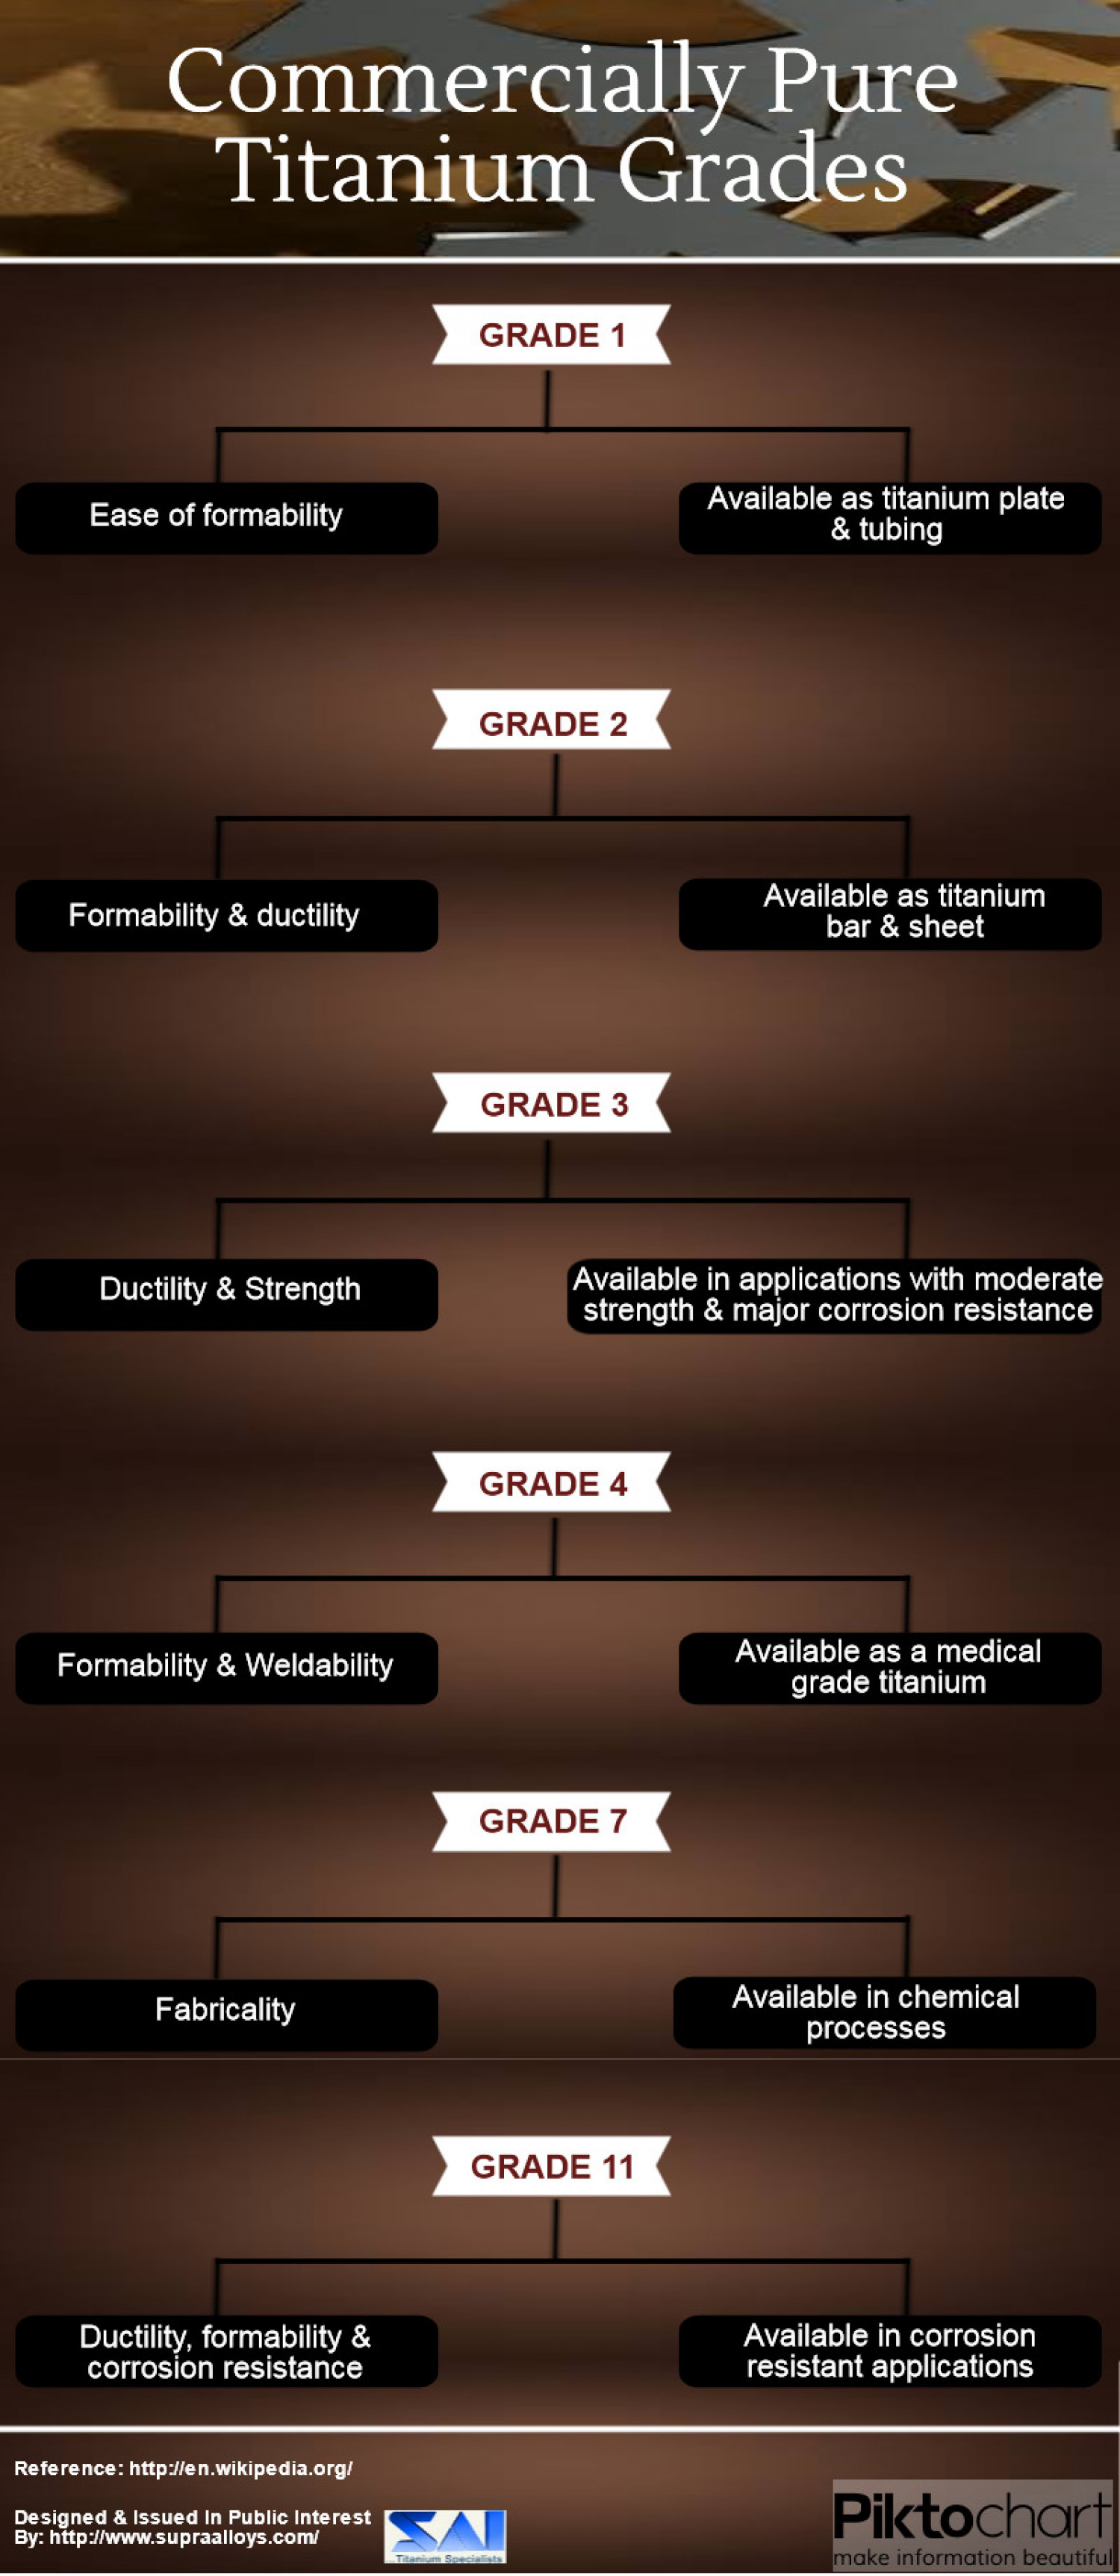 Commercially Pure Titanium Grades Infographic